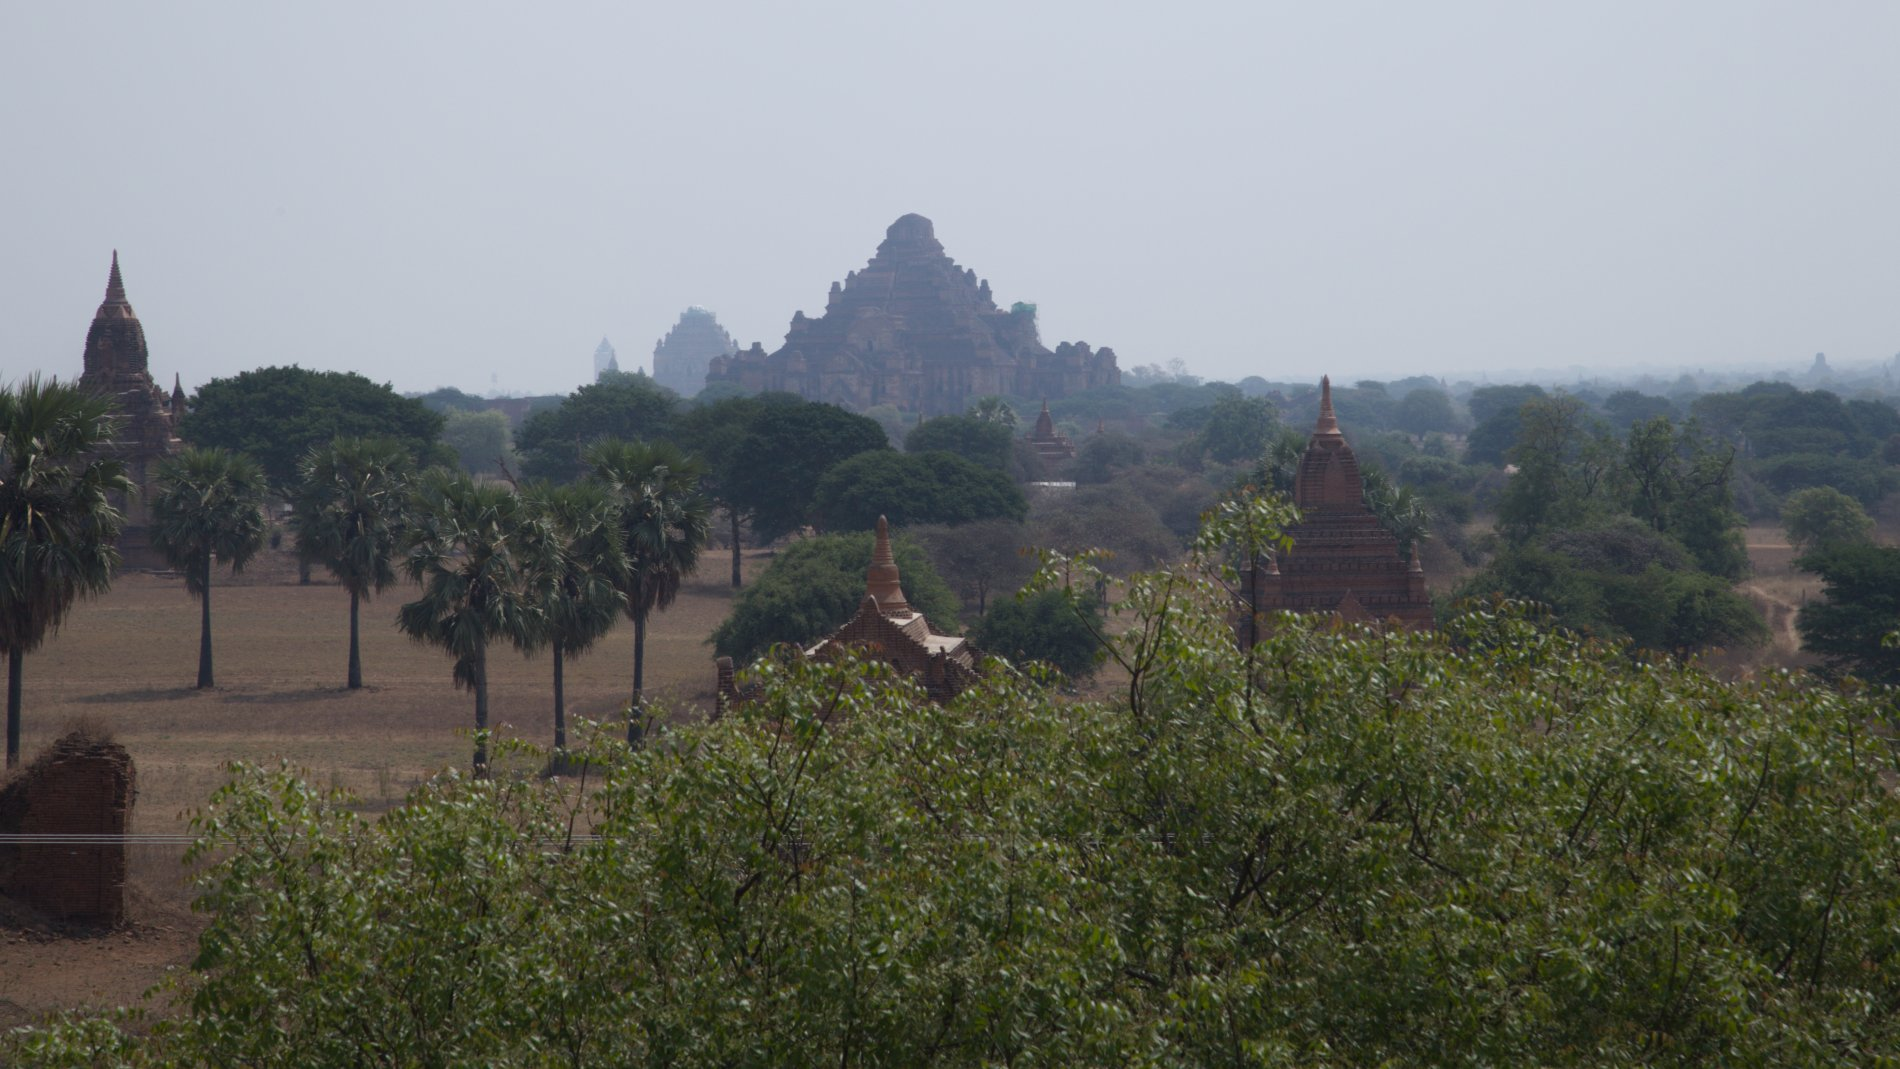 Bagan_279.jpg-commment